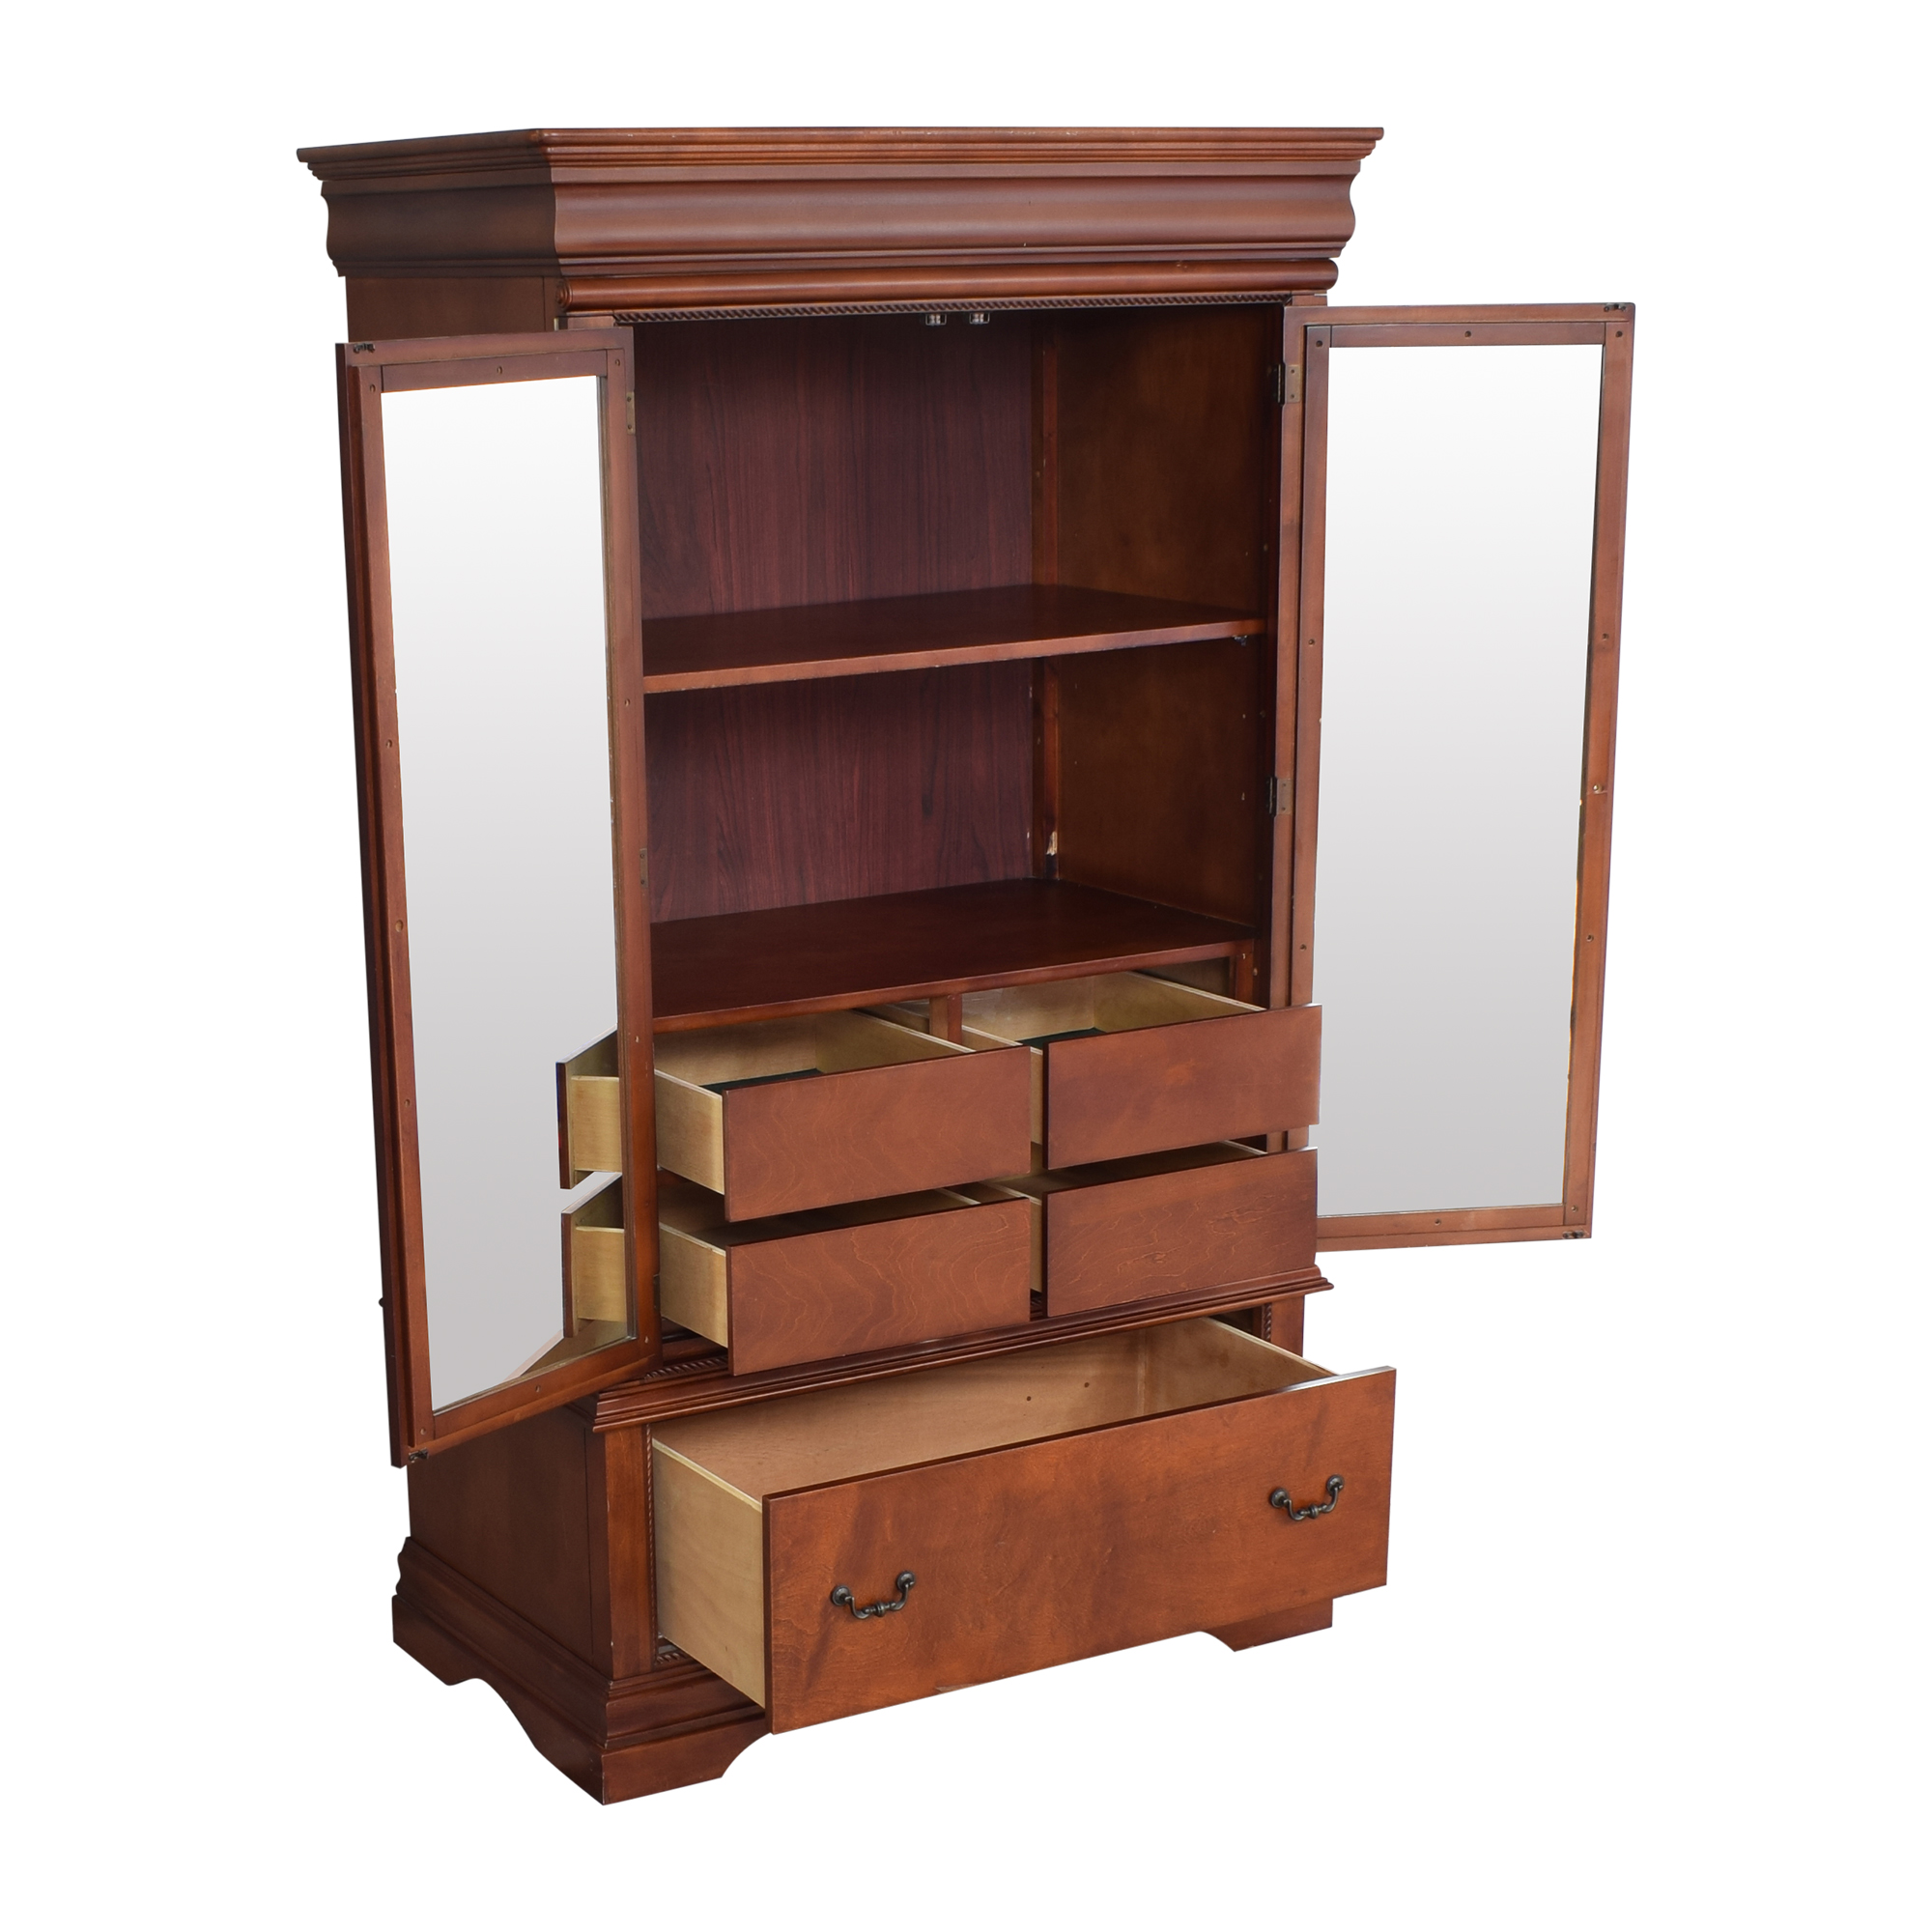 Broyhill Furniture Broyhill Furniture Two Door Armoire with Mirrors on sale